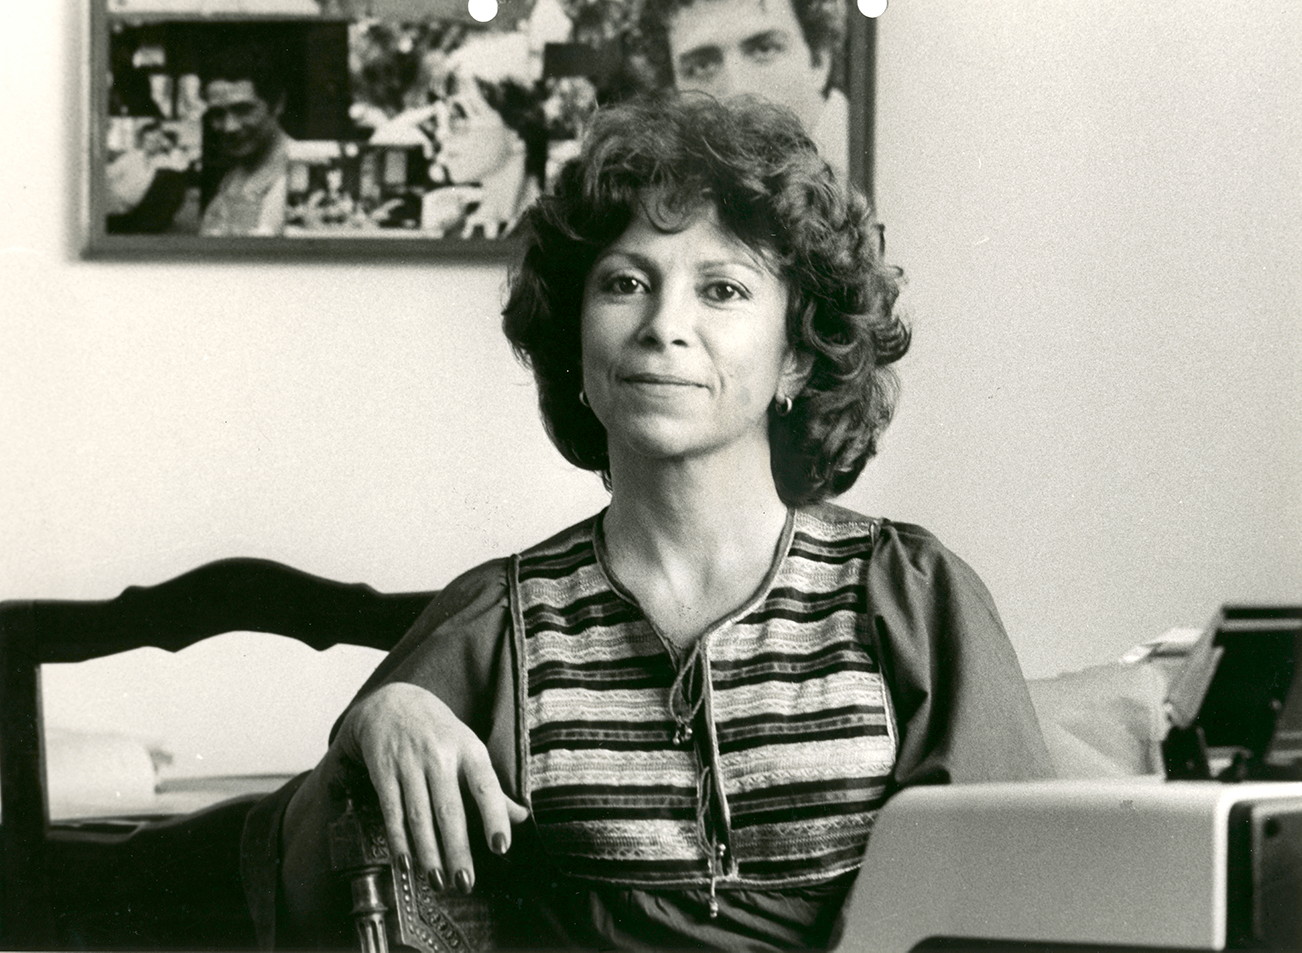 Isabel Allende at her typewriter, wearing a kaftan